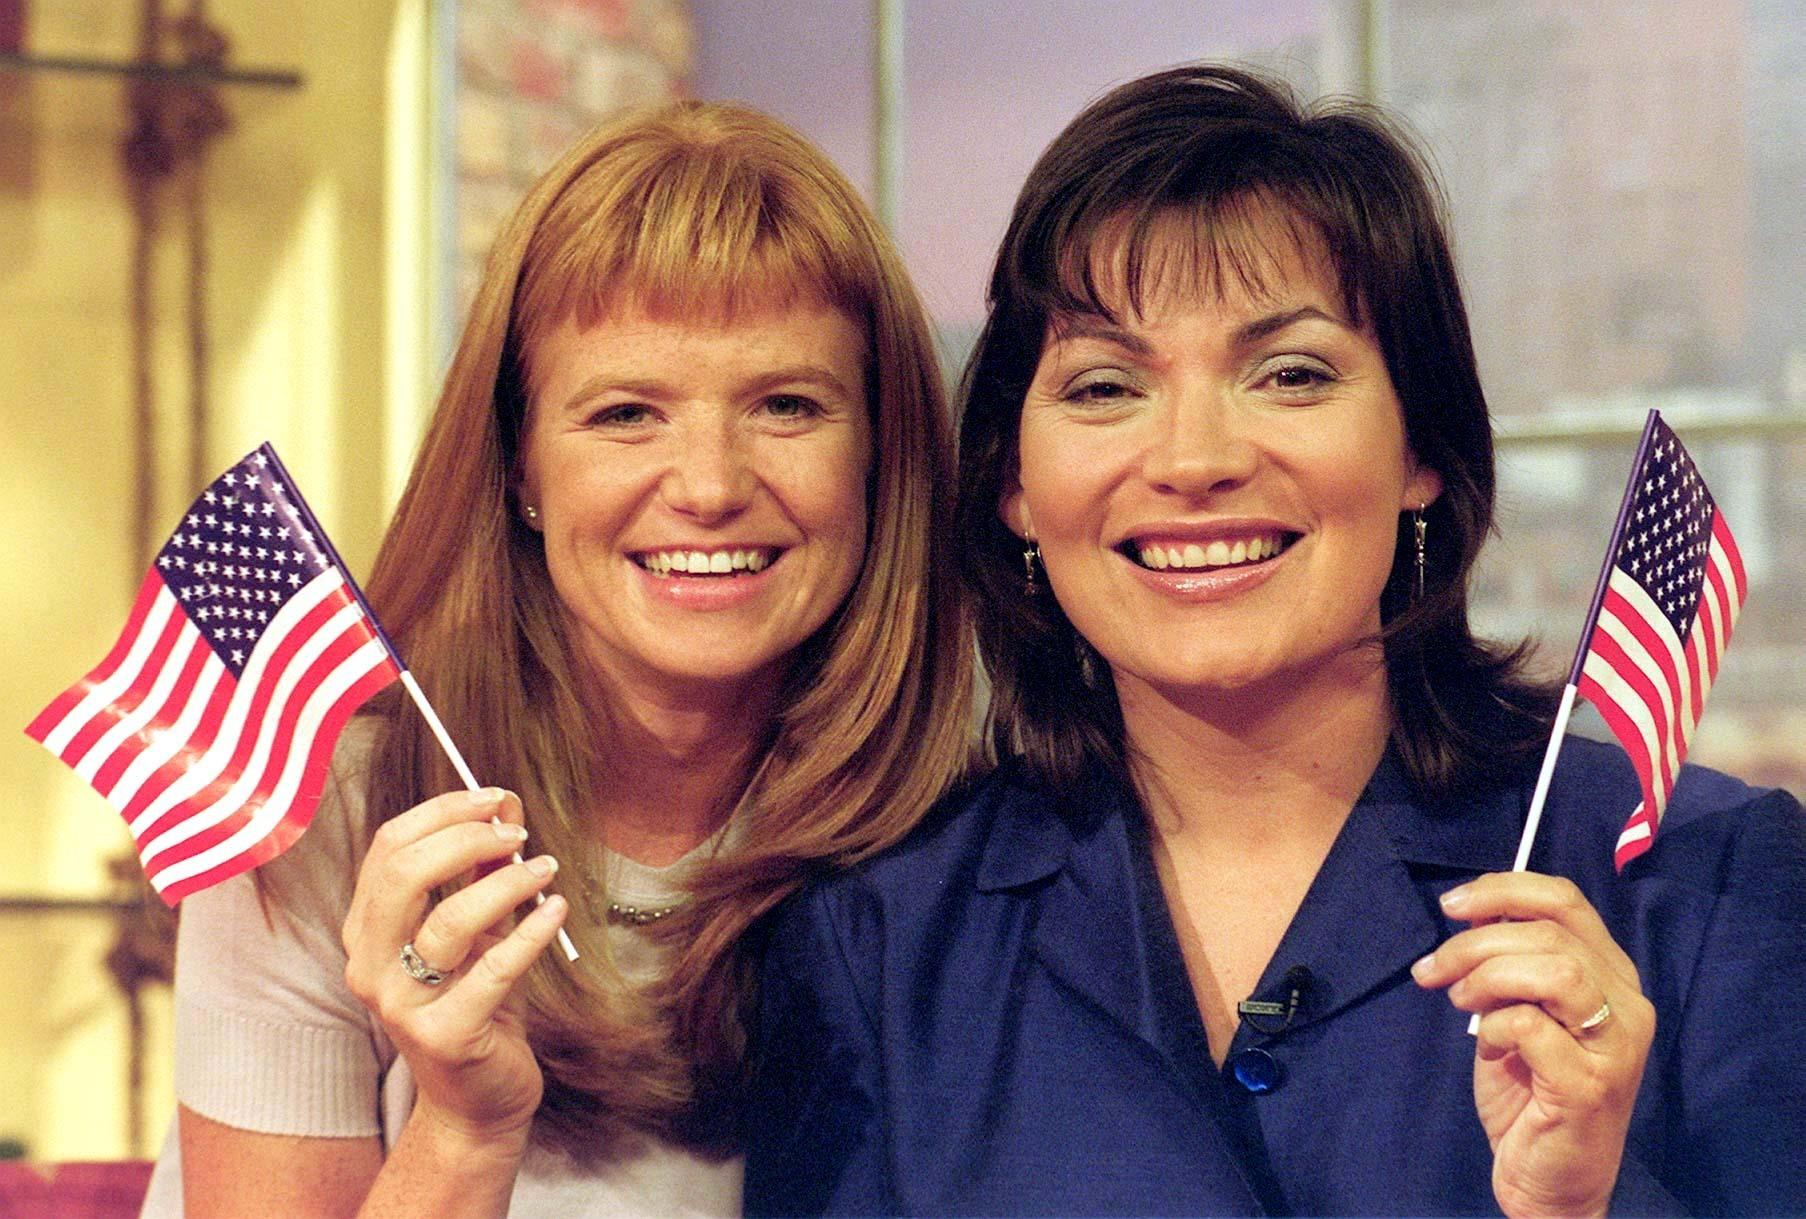 Actress Patsy Palmer (L) and GMTV presenter Lorraine Kelly at GMTV. It was announced 8/9/99 that Patsy, who plays Bianca in the BBC soap Eastenders will stand in for Lorraine for a week in October, and host the Lorraine Live section of the show from Miami.  * Palmer will be seen on Lorraine Live from 9am to 9.25am each day from Monday October 18 to Friday October 22.